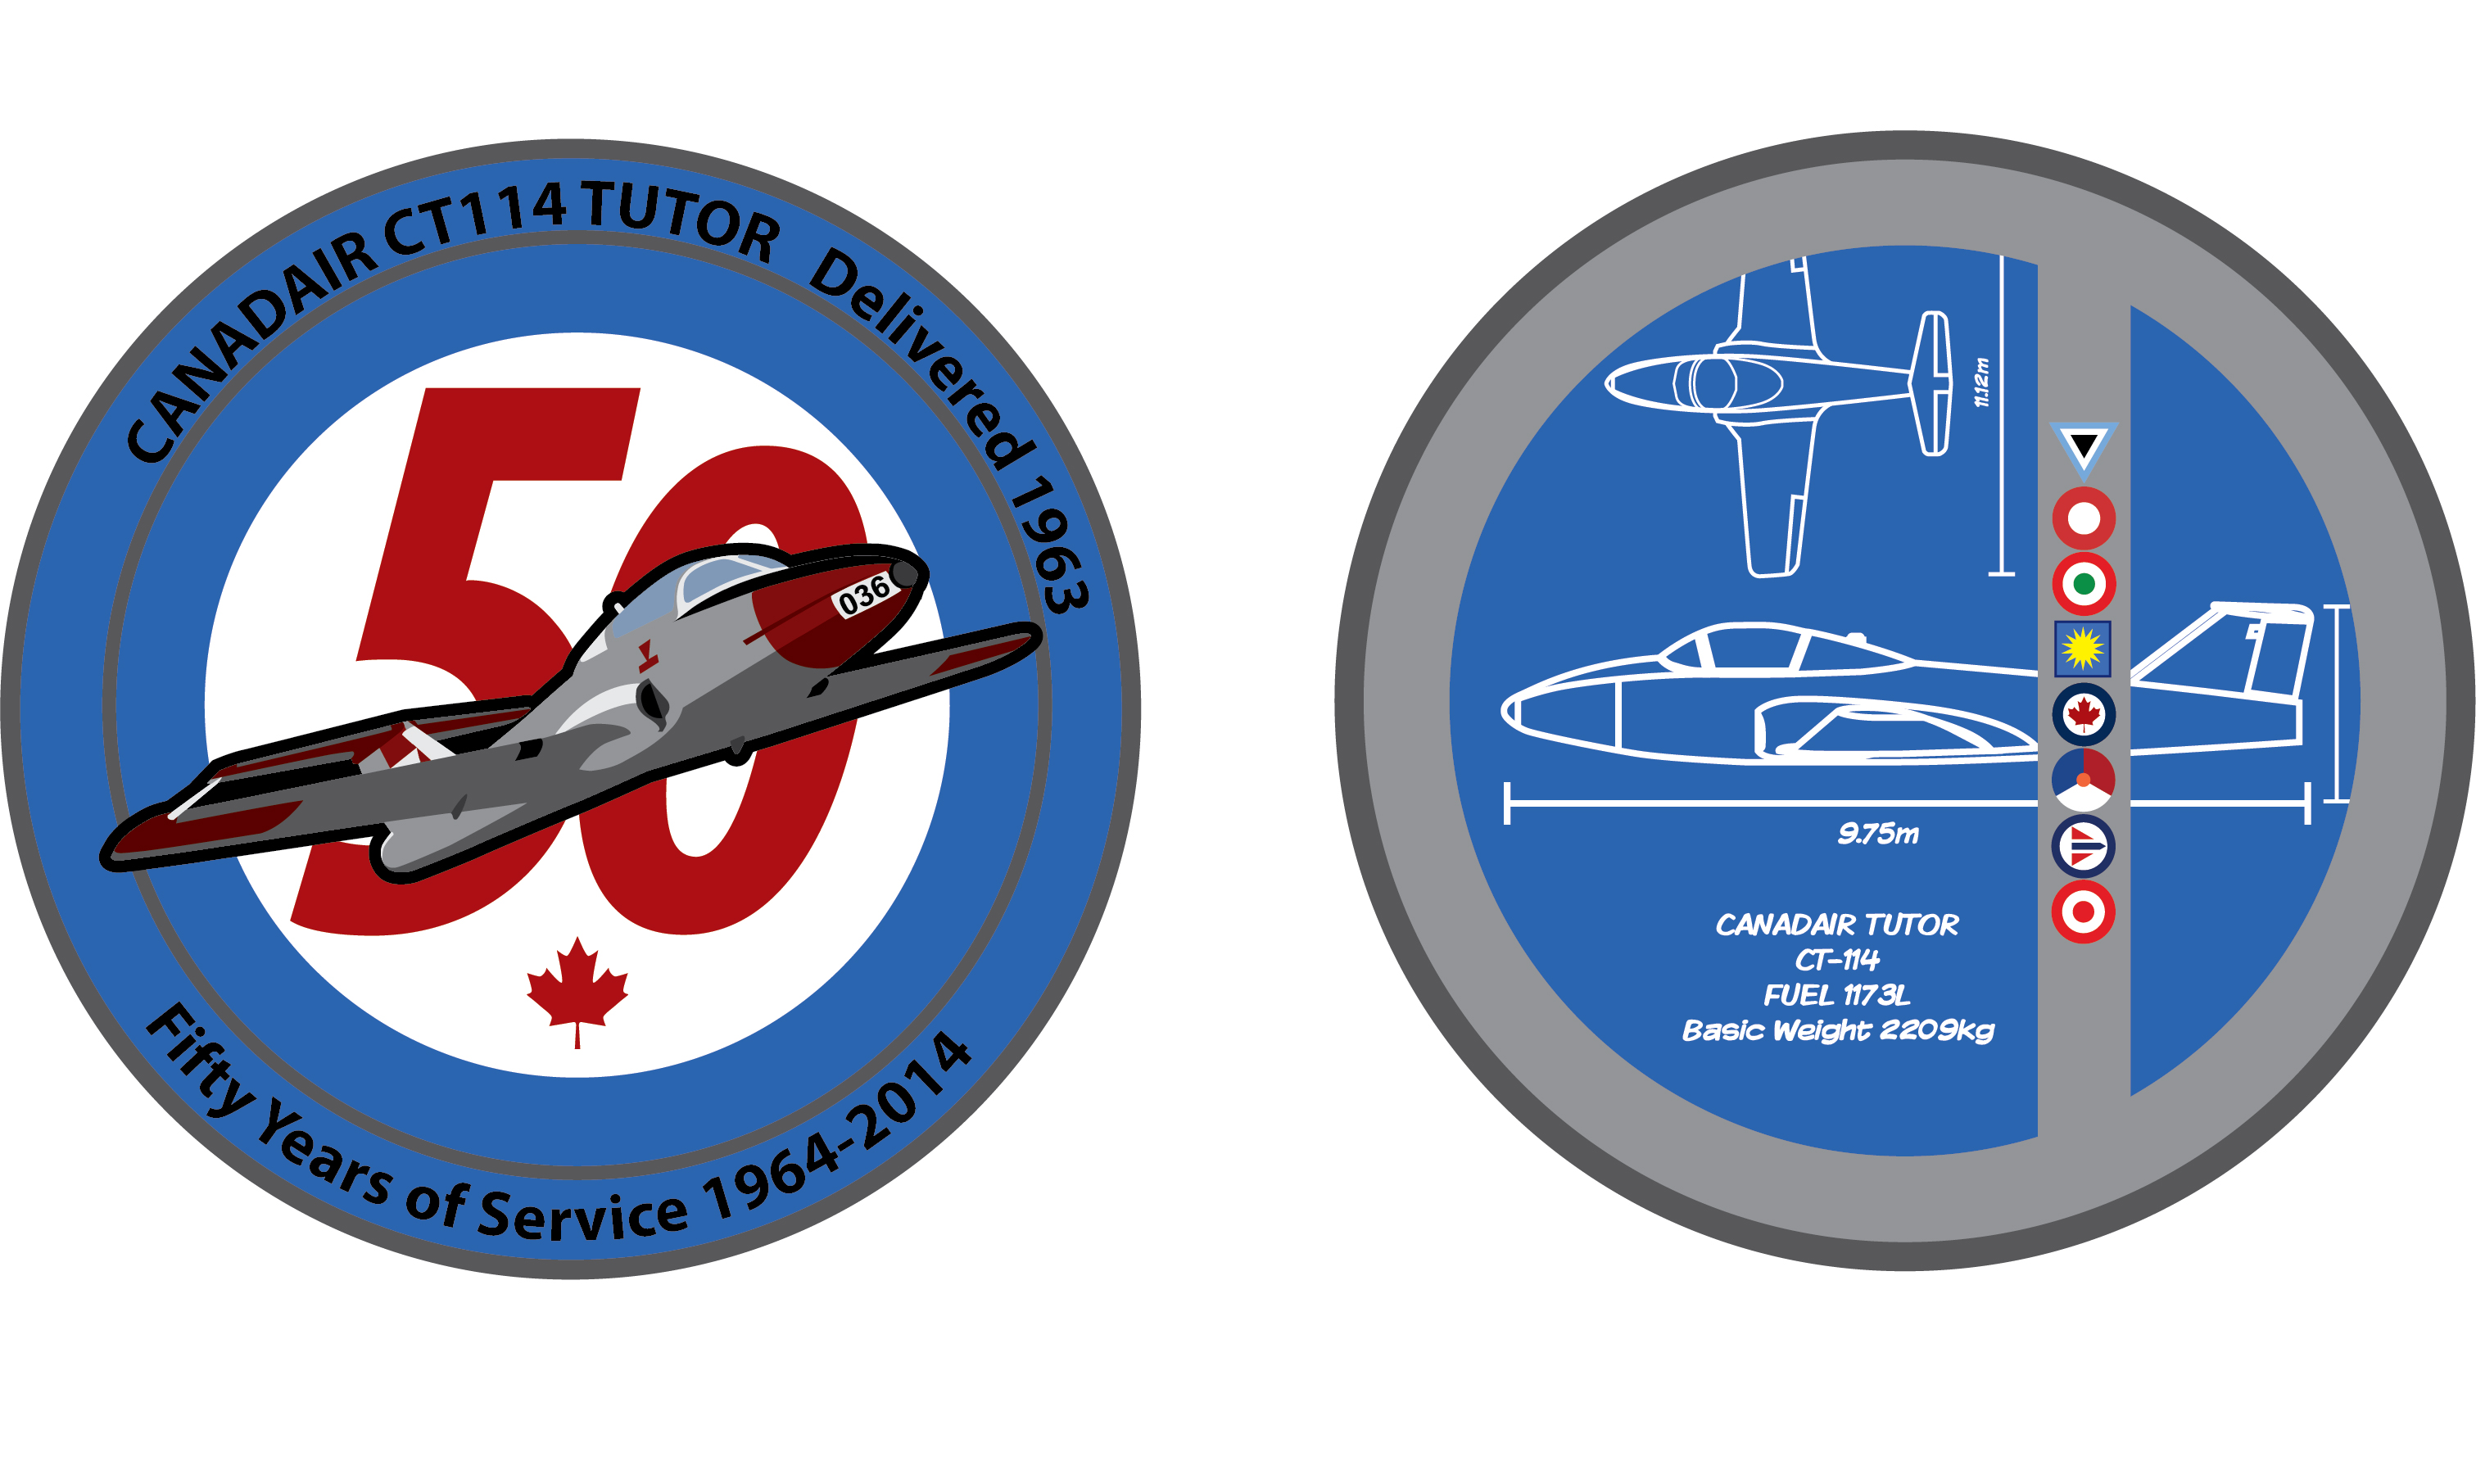 The CT-114 Tutor 50th commemorative coin as pictured in blueprint sketches. PHOTO: Mike Leudey